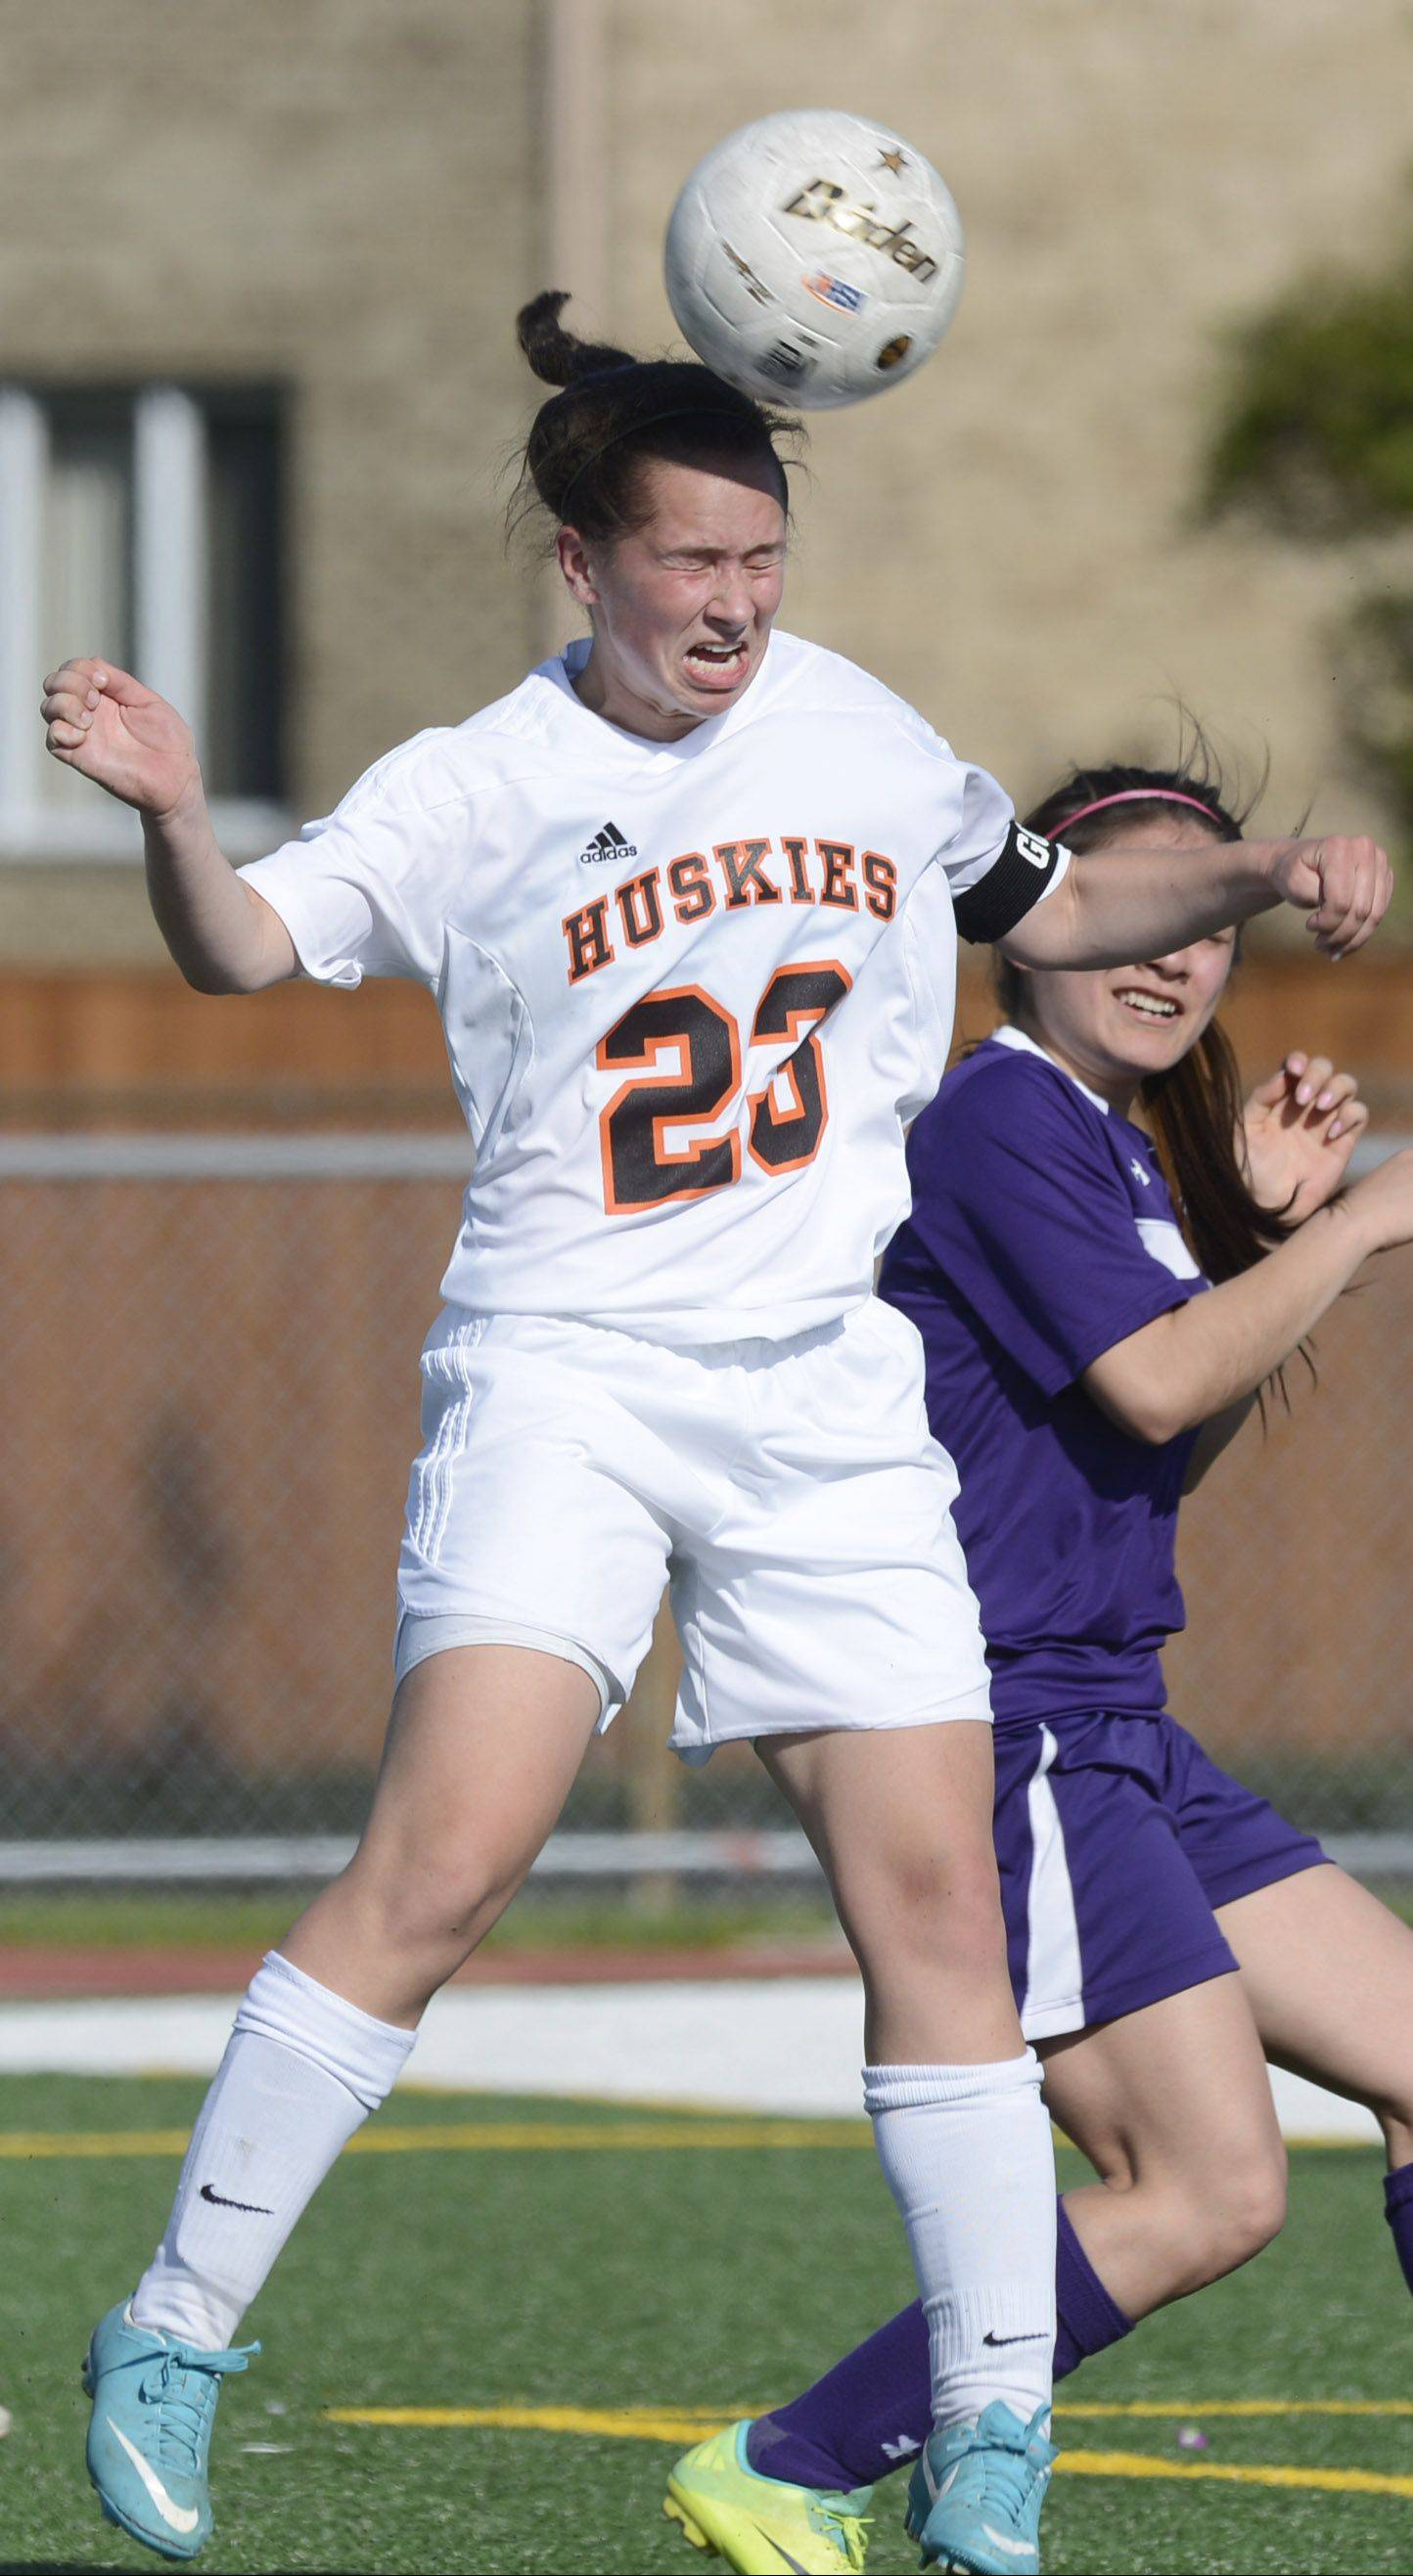 Hersey�s Lauren Gierman, left, leaps for a header next to Waukegan�s Jasmine Res. Gierman scored twice in the Huskies� 7-0 triumph; Hersey will host Stevenson in regional final play Friday.